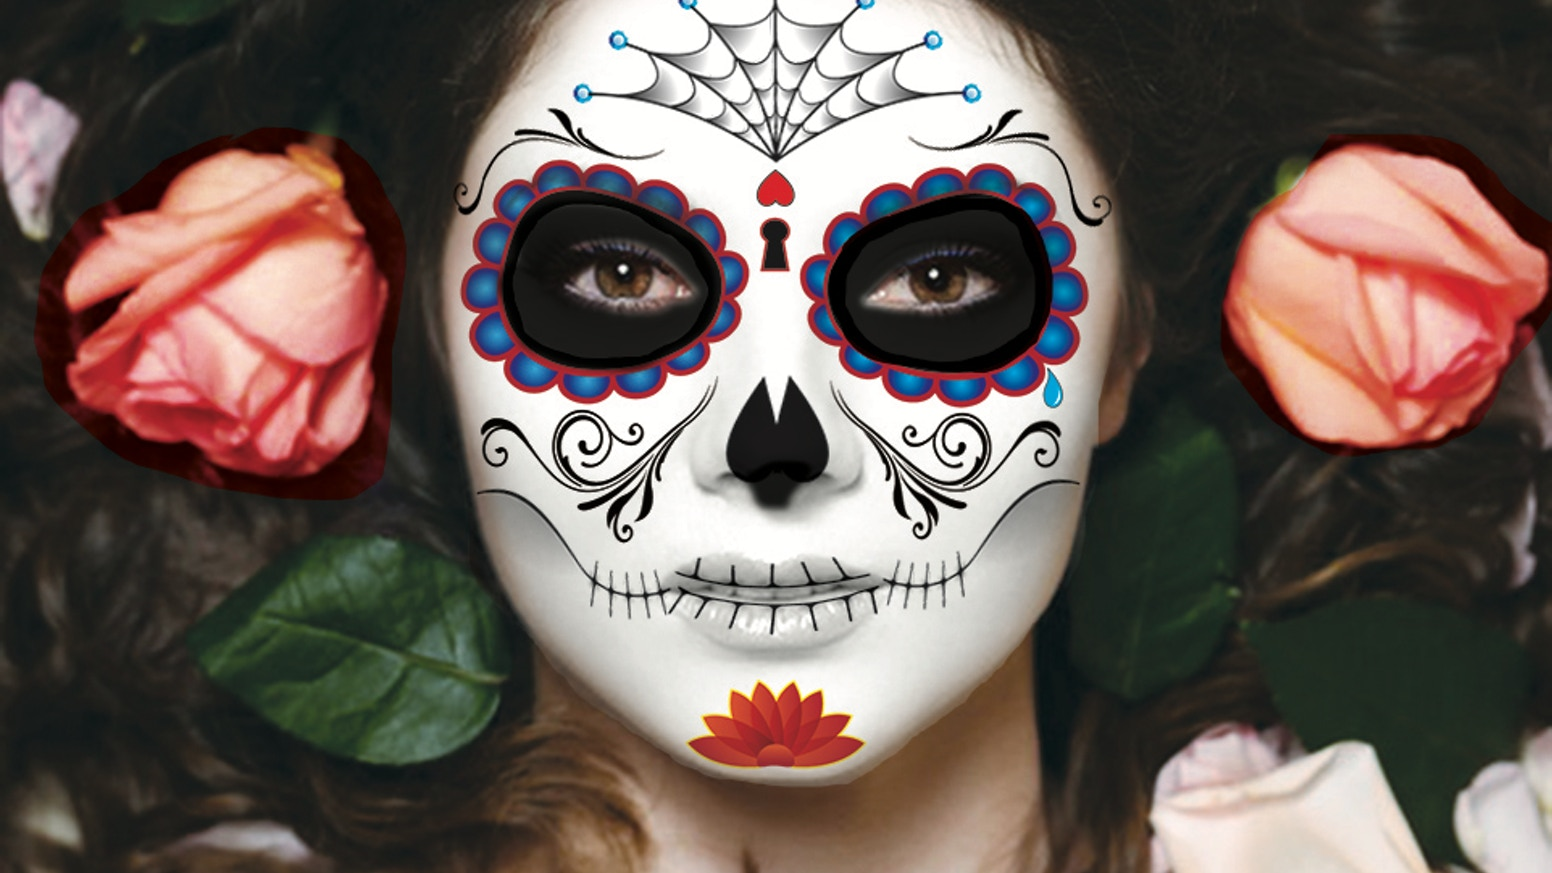 Fabulous Sugar Skull Temporary Tattoos for Halloween /Day of the Dead by  KY24